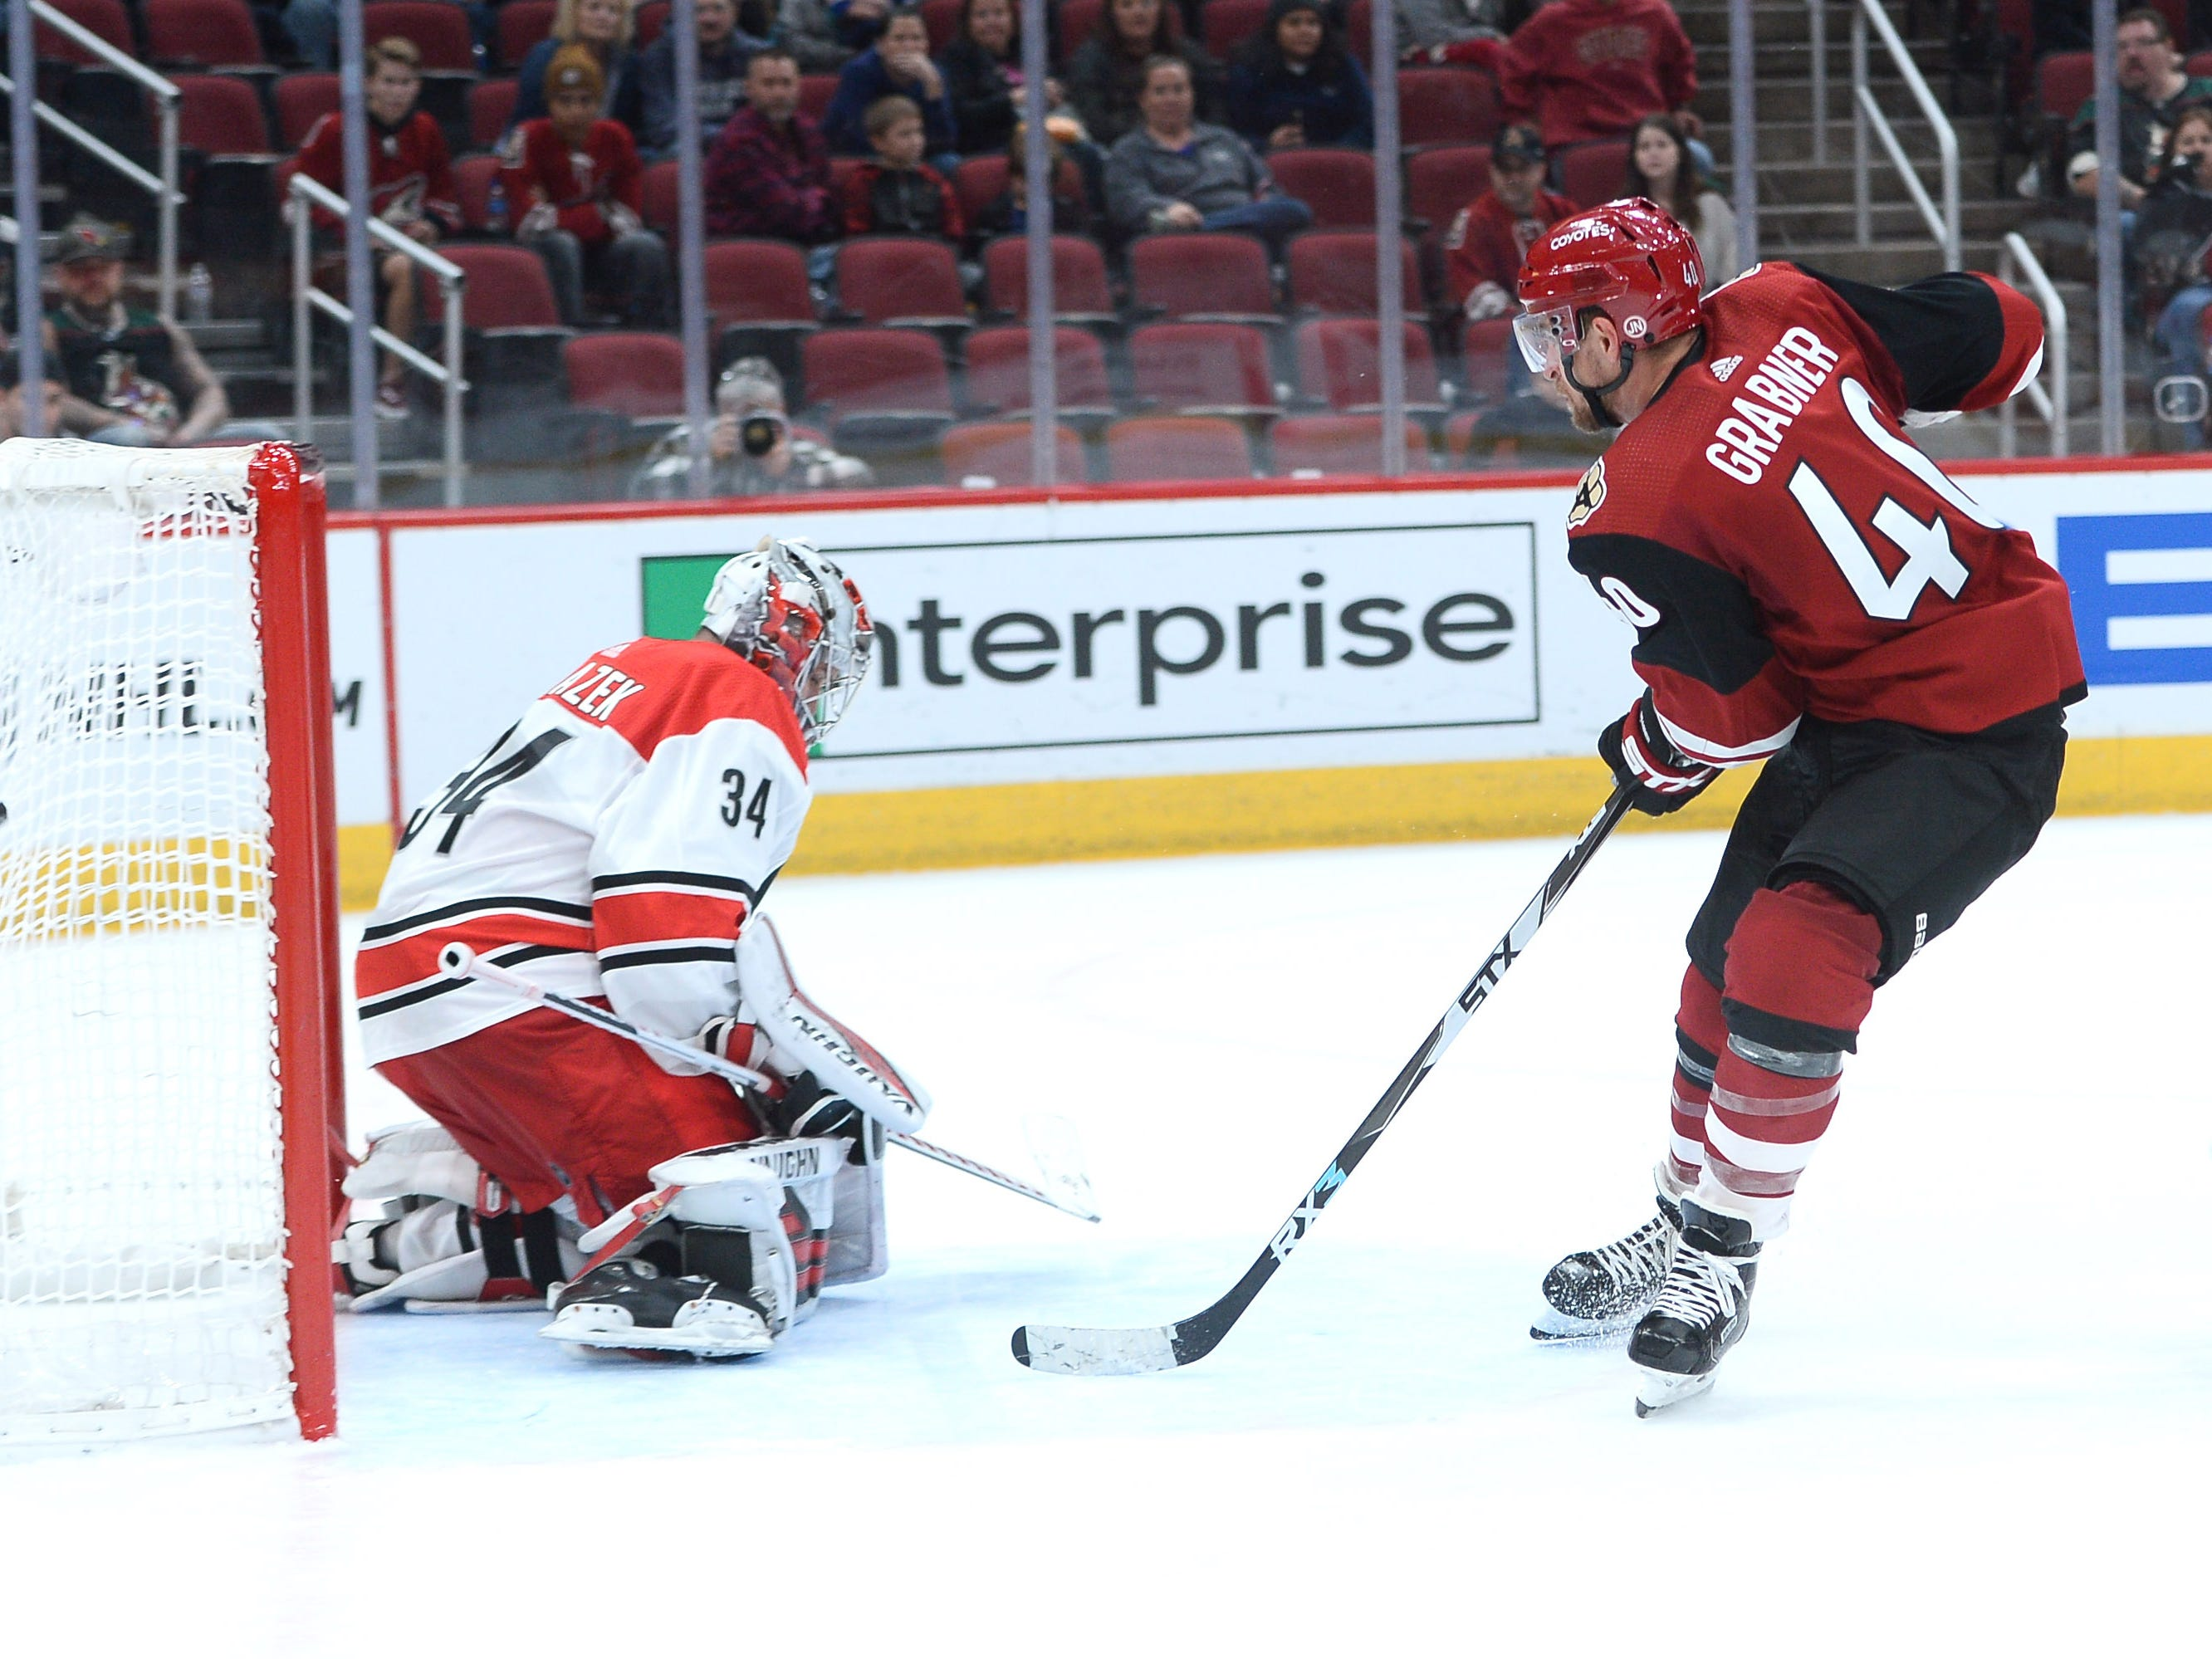 Nov 2, 2018: Arizona Coyotes right wing Michael Grabner (40) shoots and scores the game winning goal against Carolina Hurricanes goaltender Petr Mrazek (34) during the overtime period at Gila River Arena.